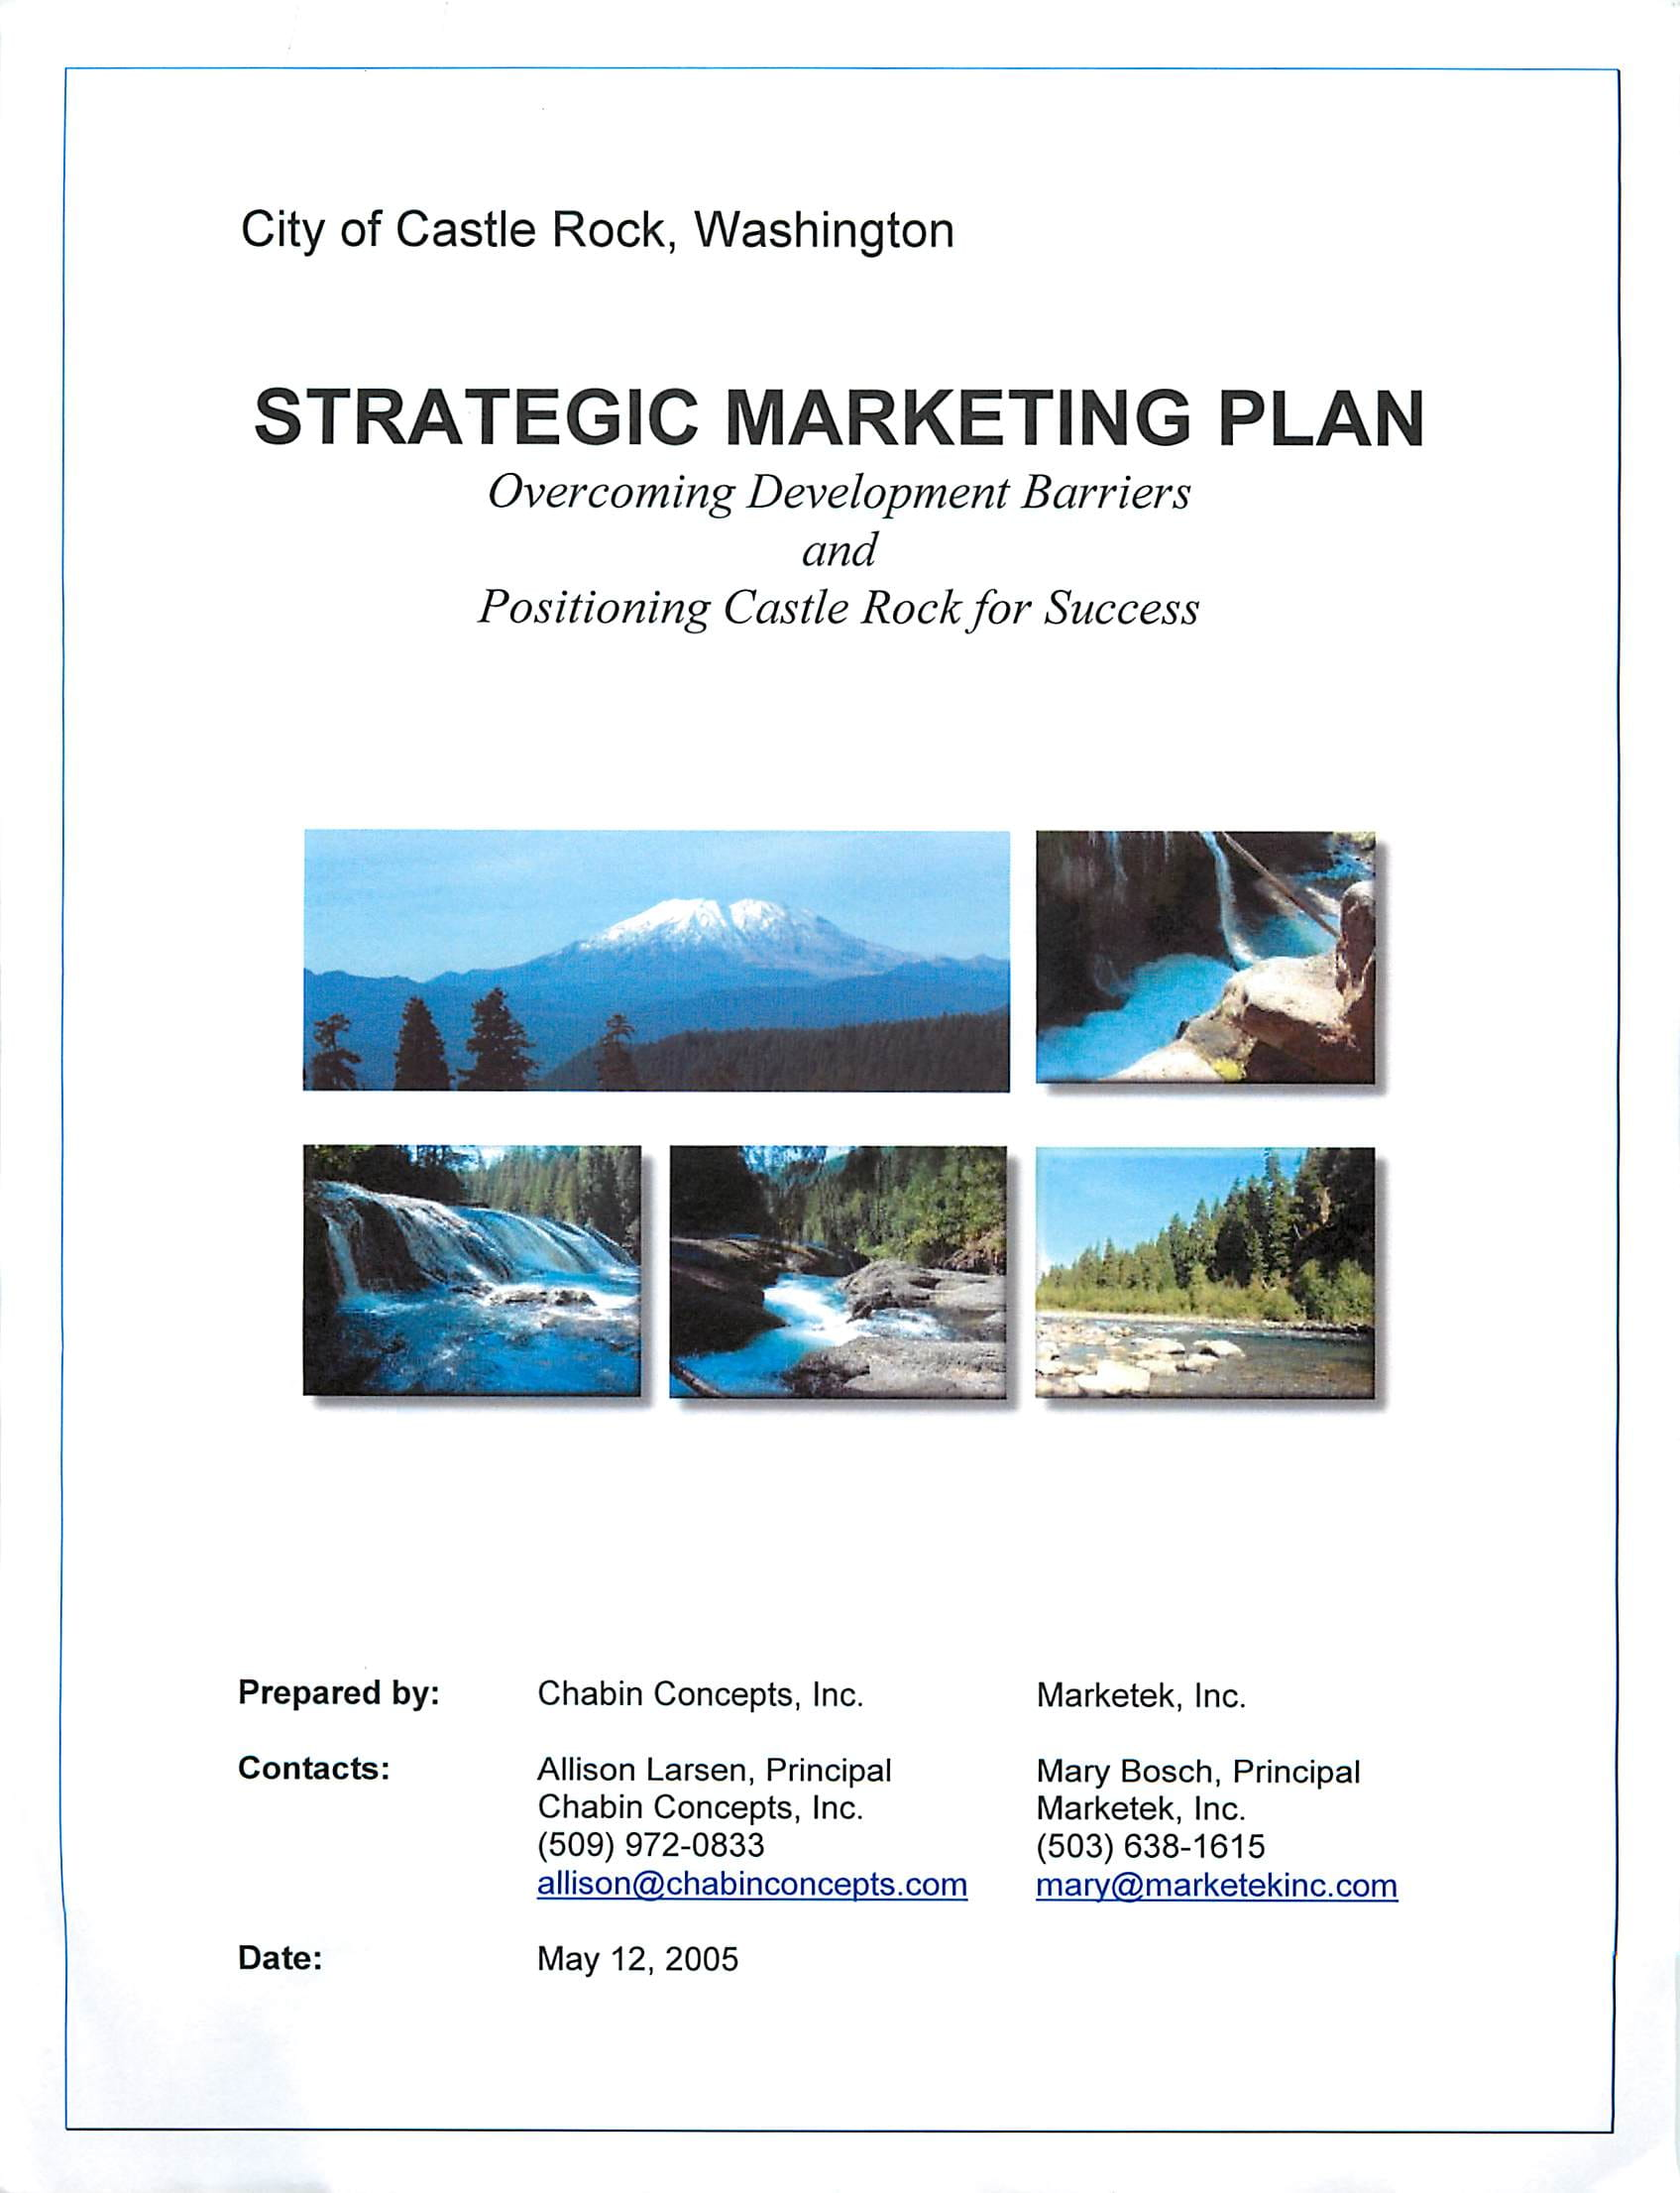 crs trategic marketing plan